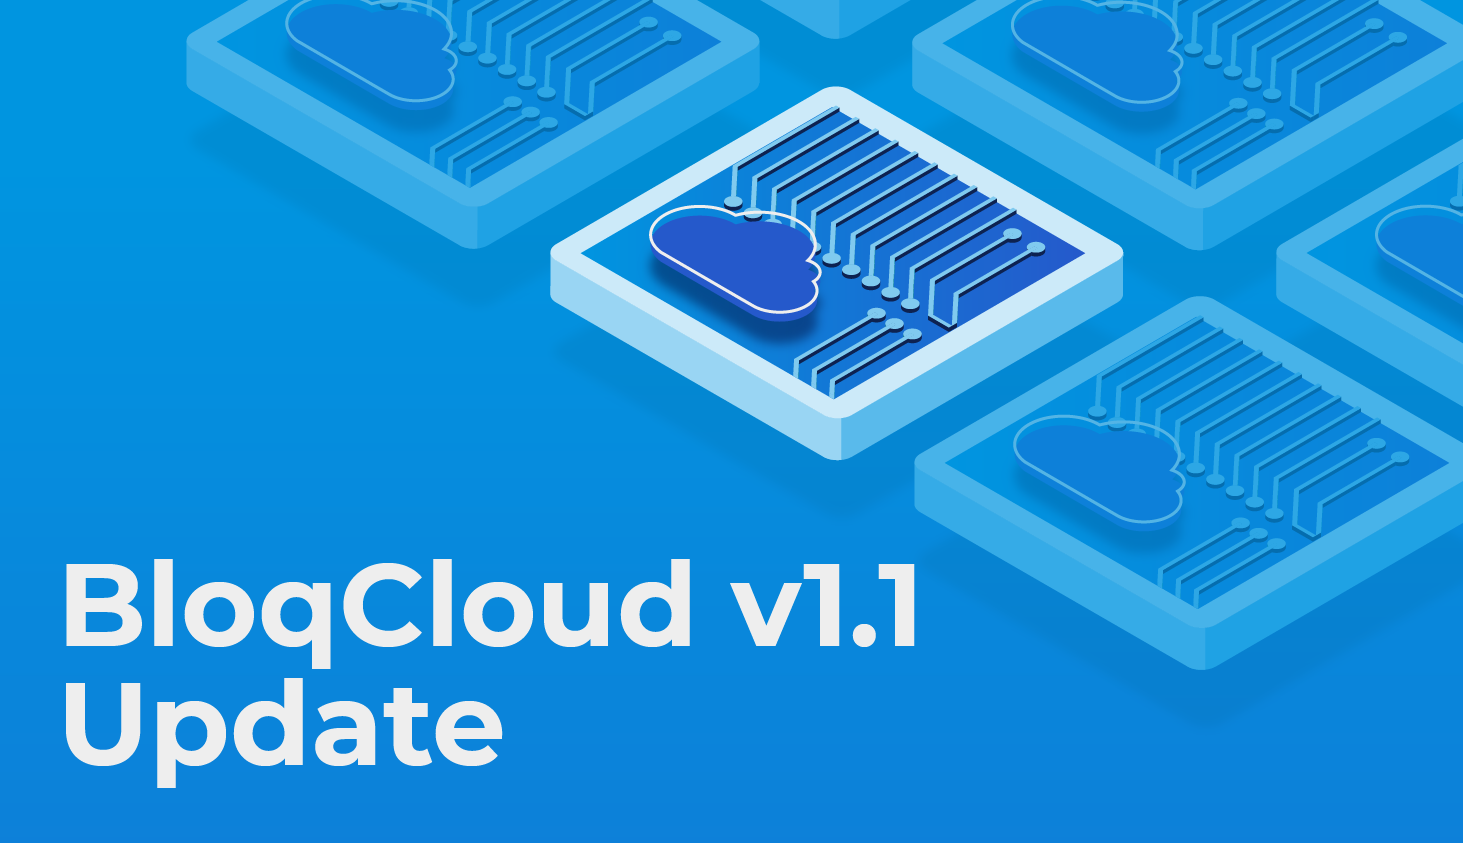 BloqCloud Introduces Load-balanced Node Clusters and Additional Improvements in v1.1